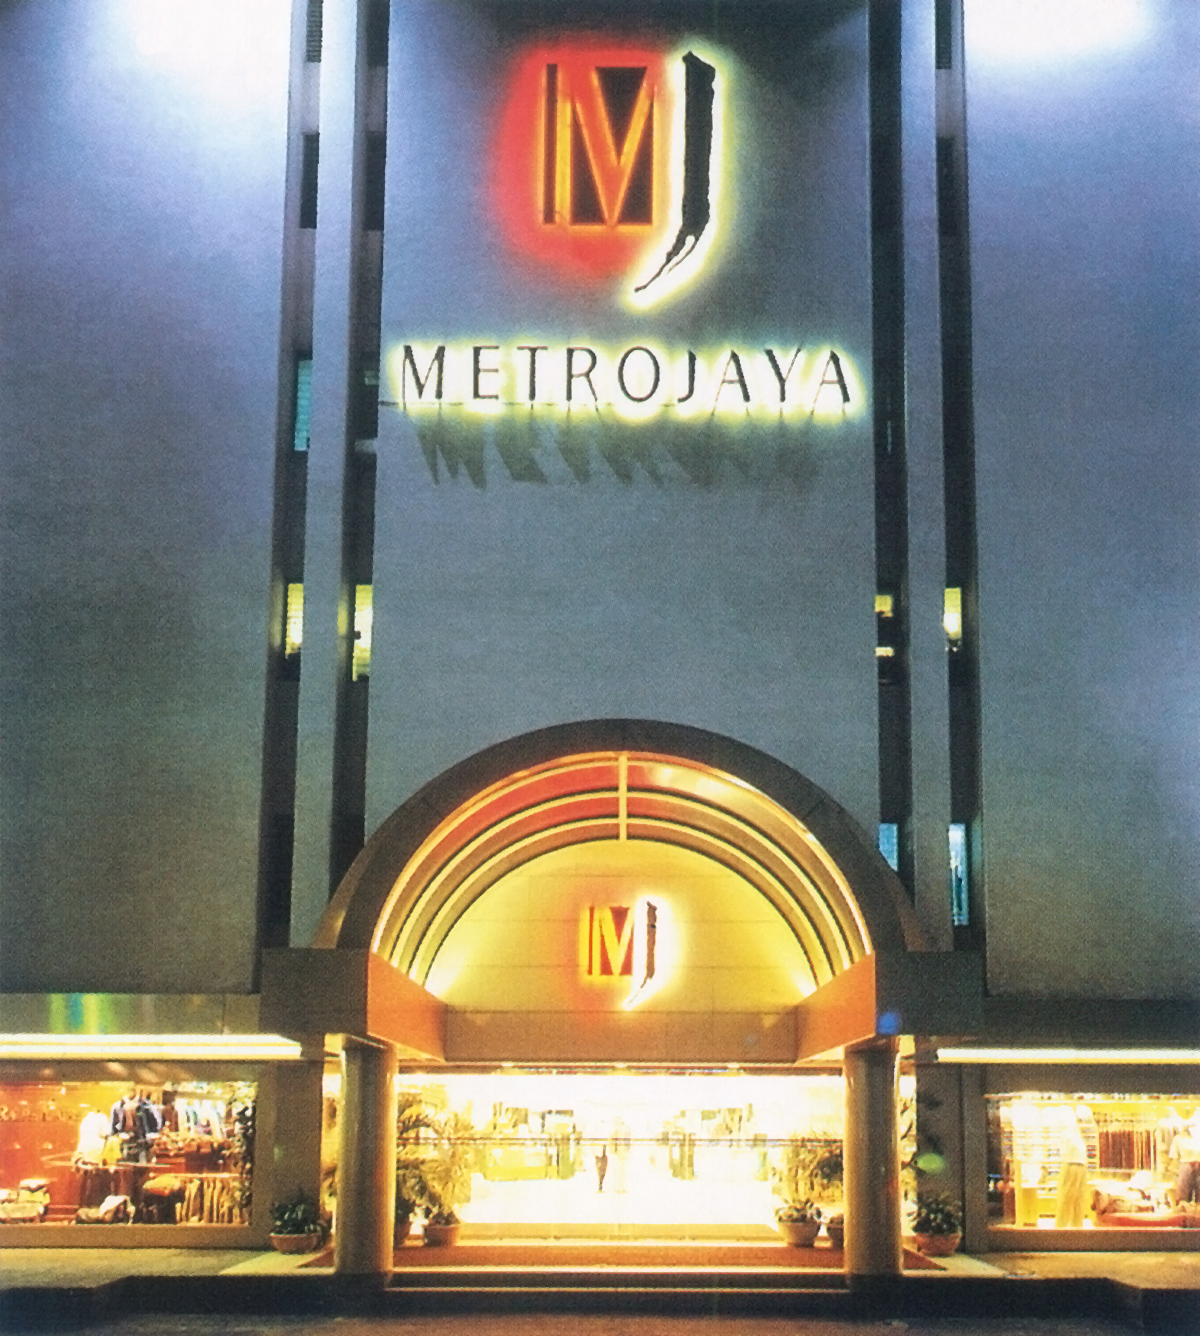 Façade of Metrojaya flagship store at Bukit Bintang Plaza, 1996. Metrojaya was Malaysia's fastest growing retail chain with four department stores and over 40 specialty stores throughout Malaysia and Singapore.